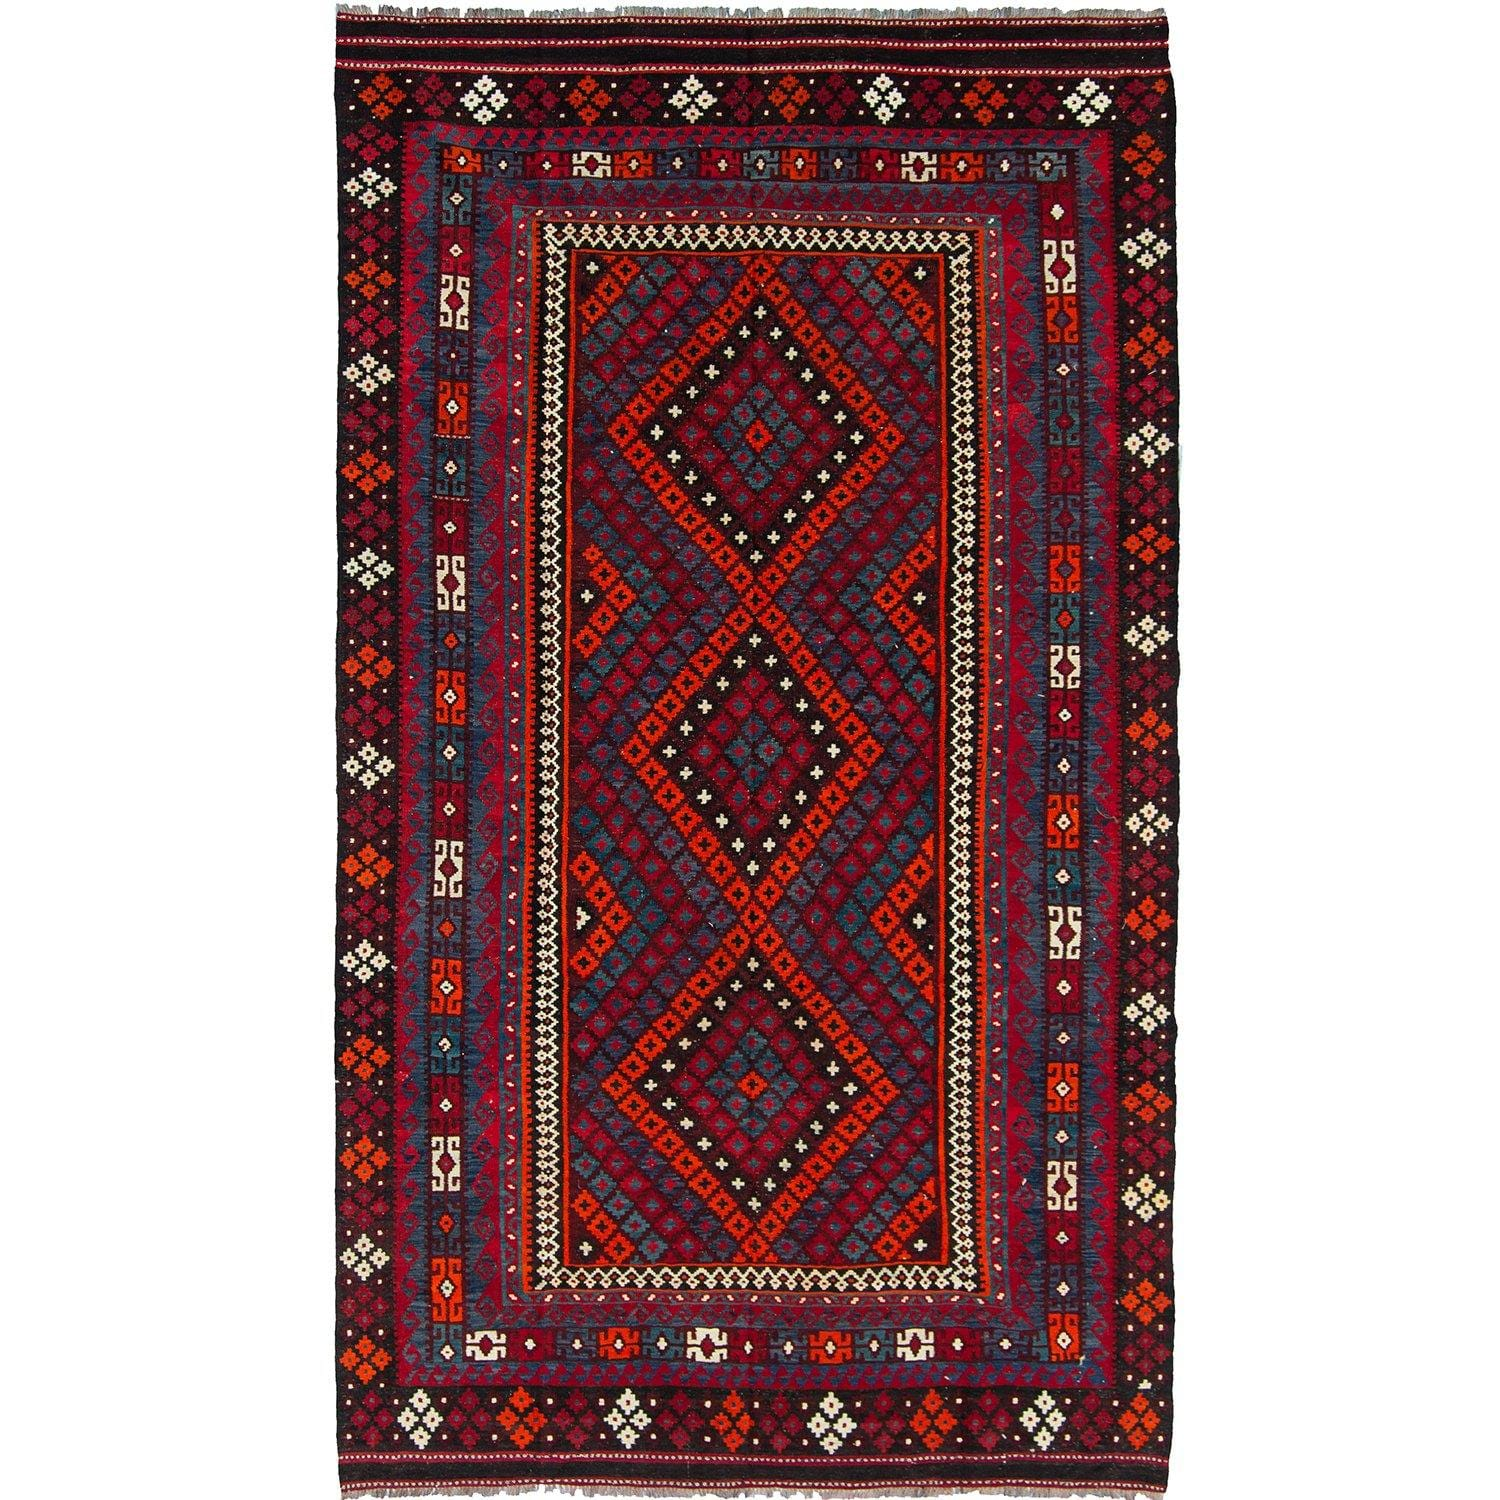 Fine Hand-woven 100% Wool KIlim Rug 240cm x 366cm Persian-Rug | House-of-Haghi | NewMarket | Auckland | NZ | Handmade Persian Rugs | Hand Knotted Persian Rugs